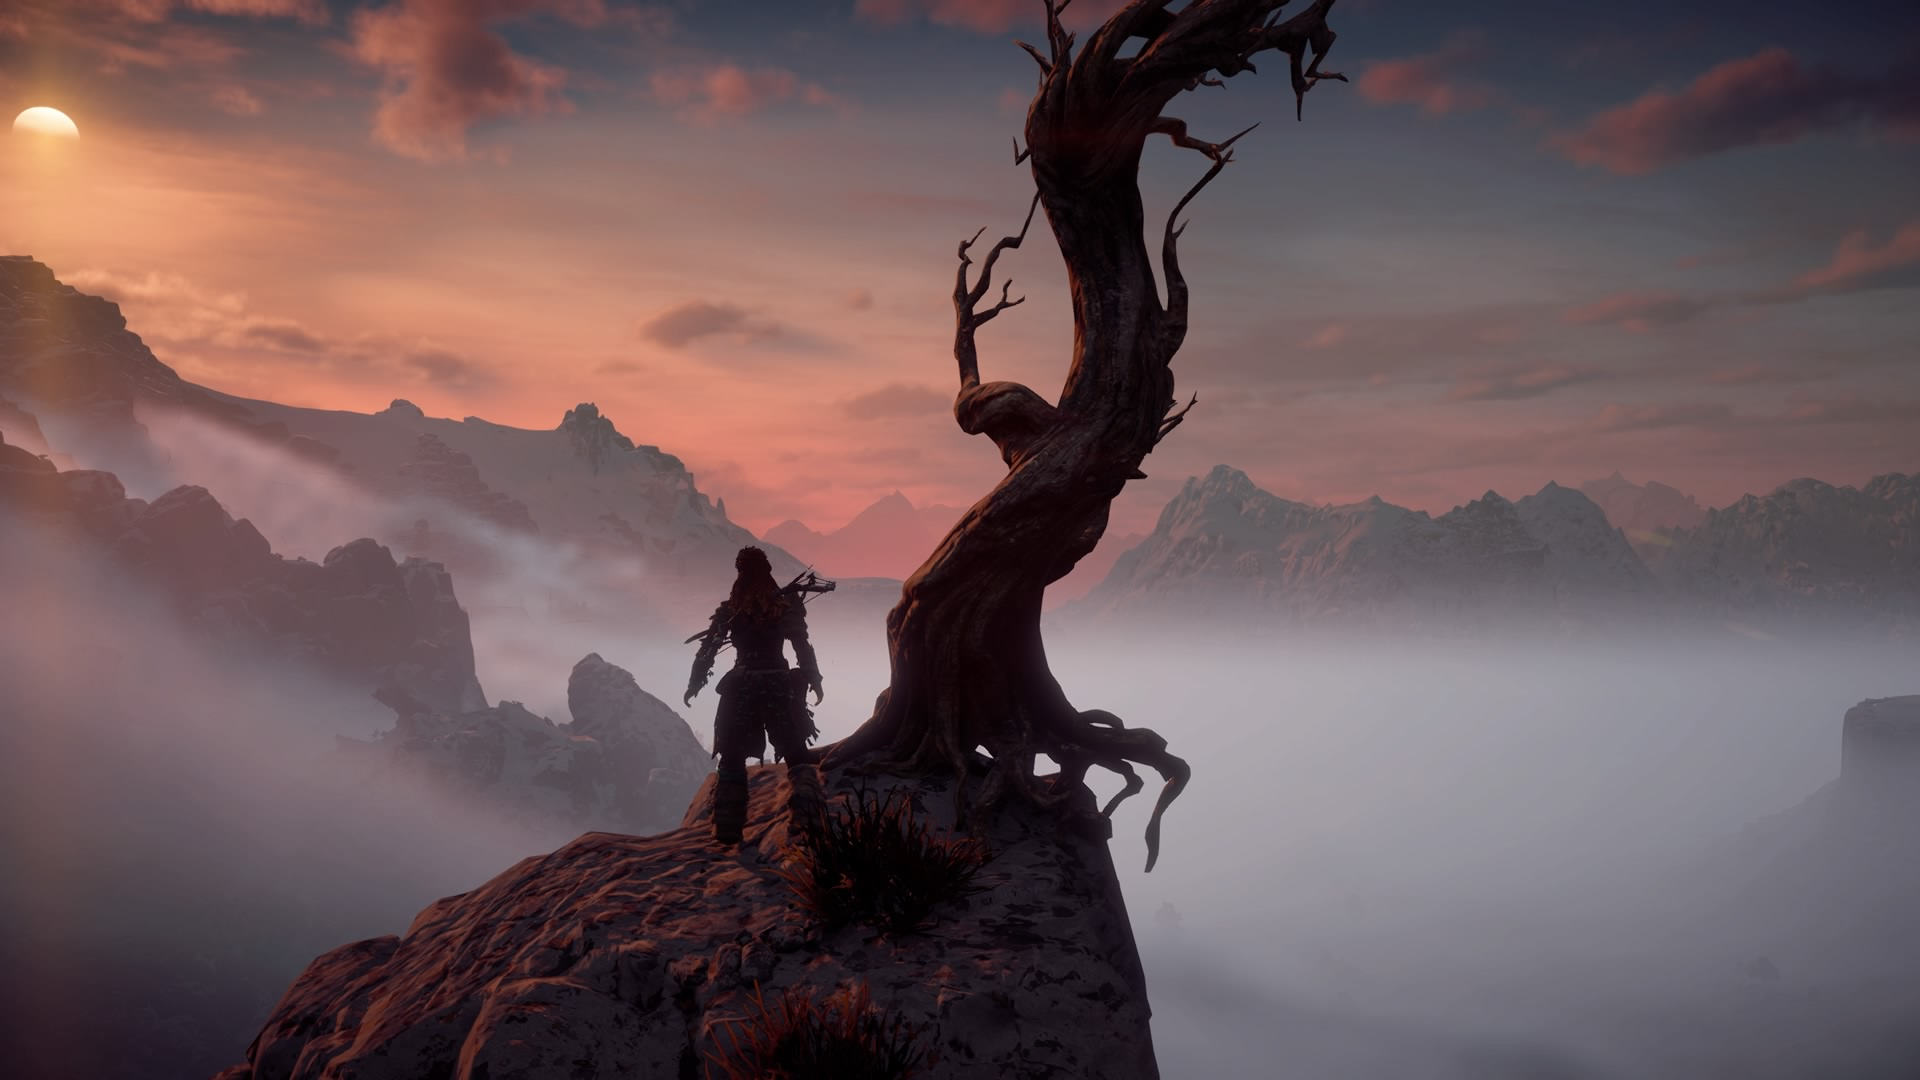 Aloy overlooking a misty landscape in Horizon Zero Dawn